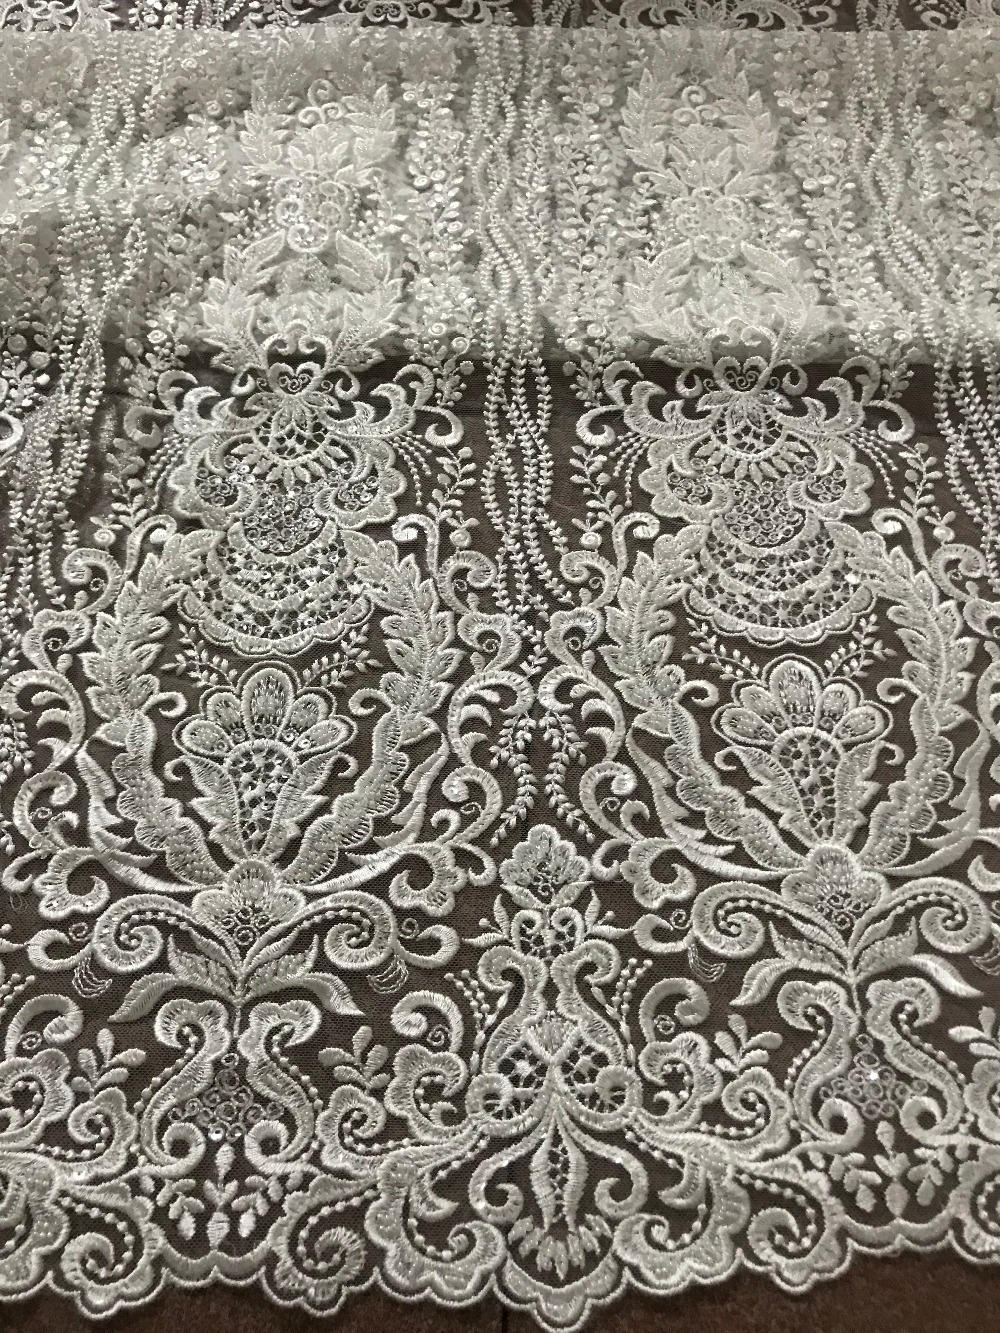 top Quality heavy beaded embroidered Tulle Lace sat-52027  nice looking french net lace Fabric for party dress